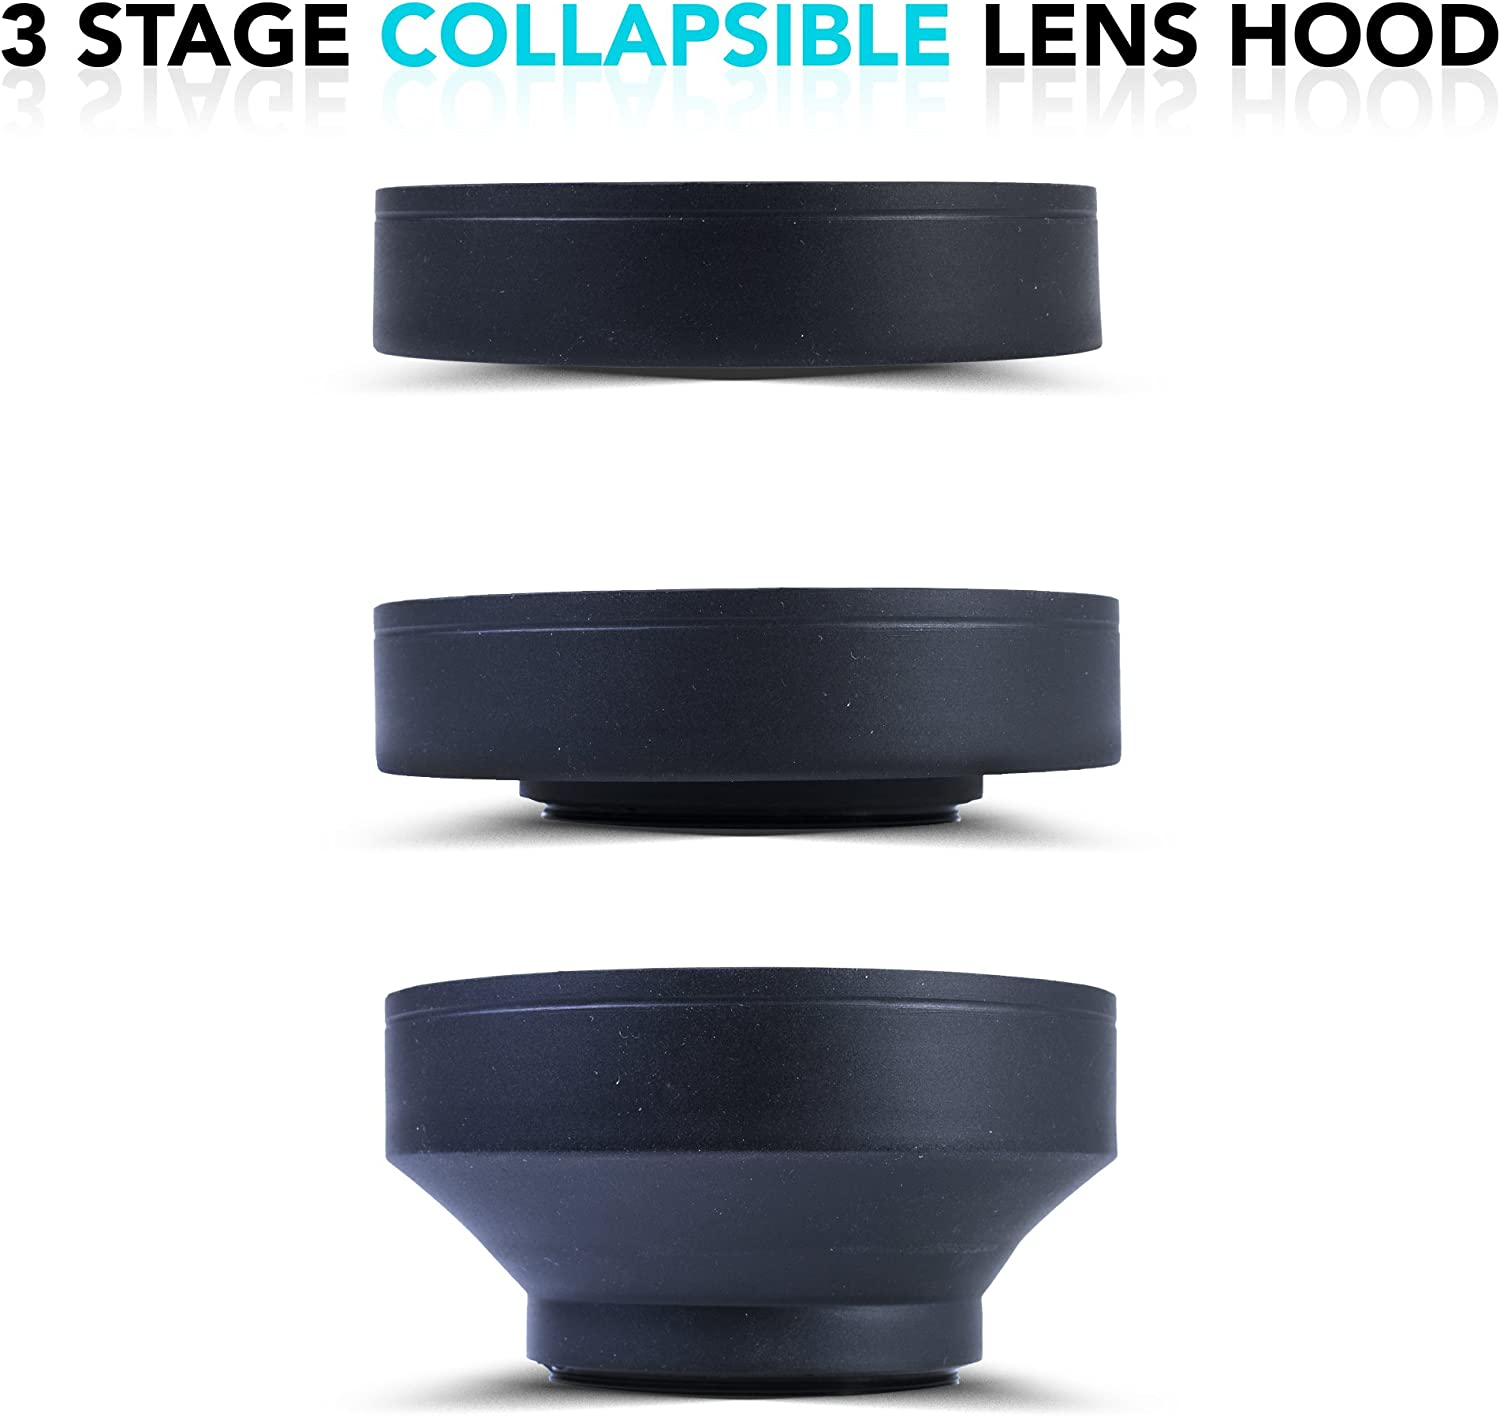 Zeikos 52mm Collapsible Rubber Lens Hood with 3 Stages for Camera Lens with 52mm Filter Thread Also Includes A Miracle Fiber Microfiber Cloth